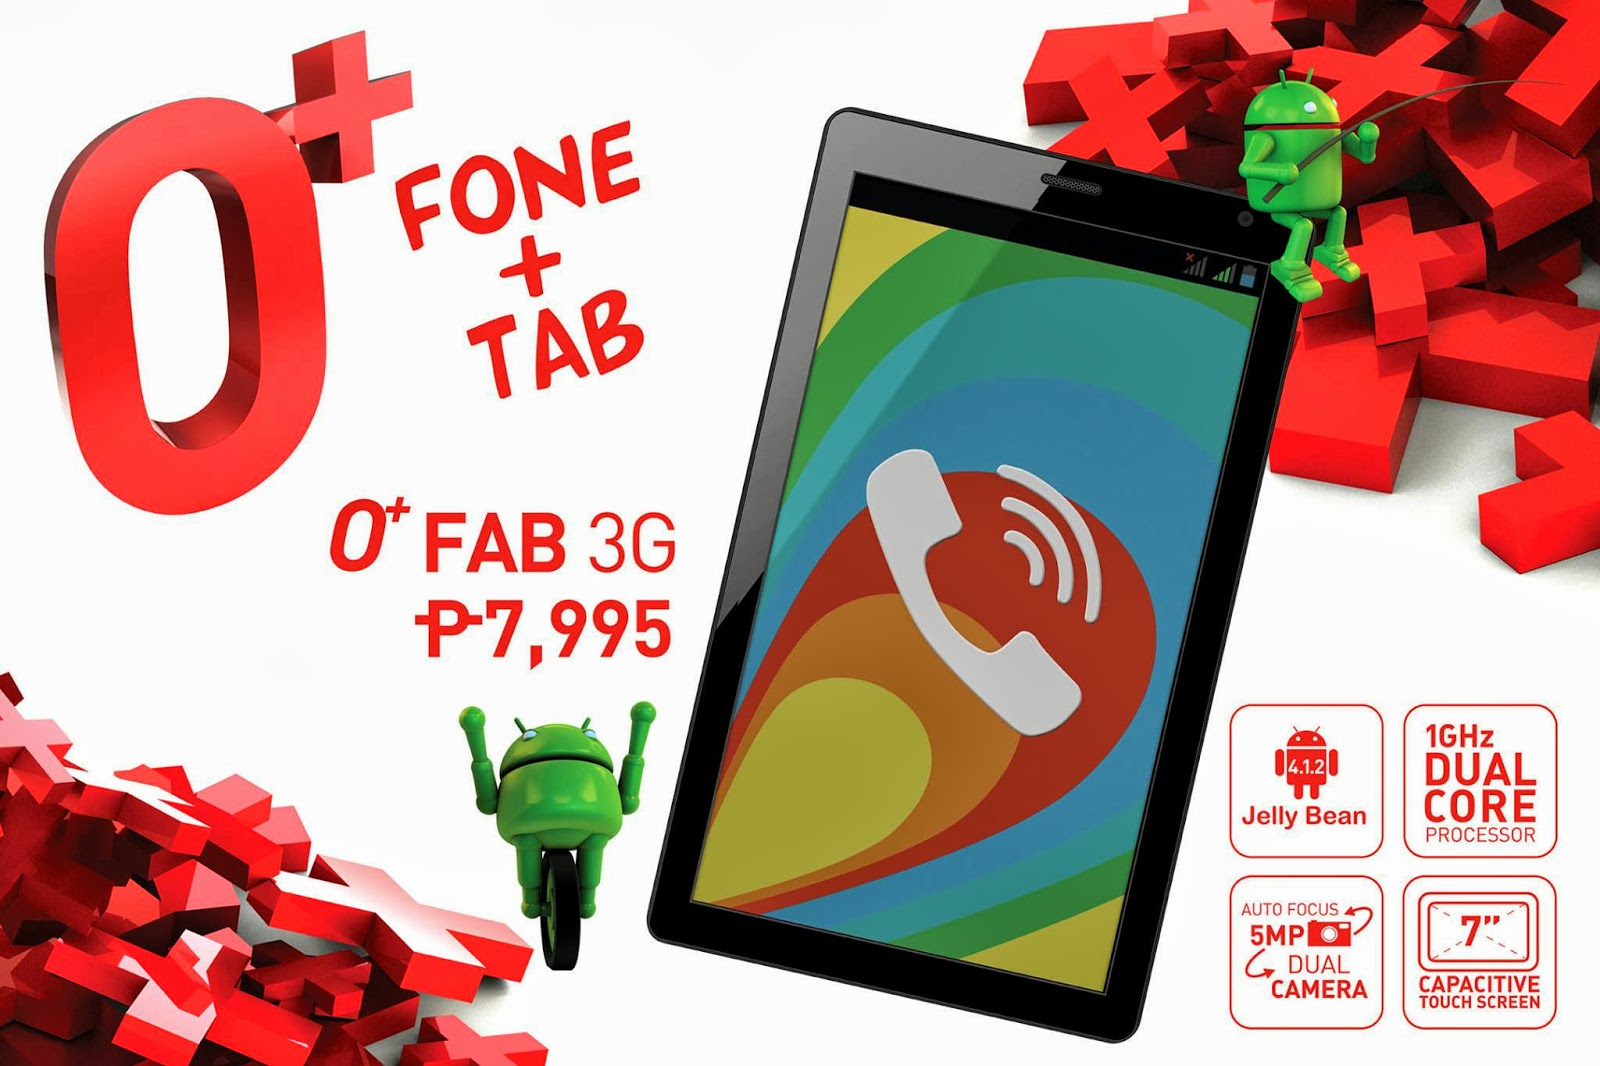 O+ Fab 3G Tablet with SIM slot, phablet specs for the price of P7995